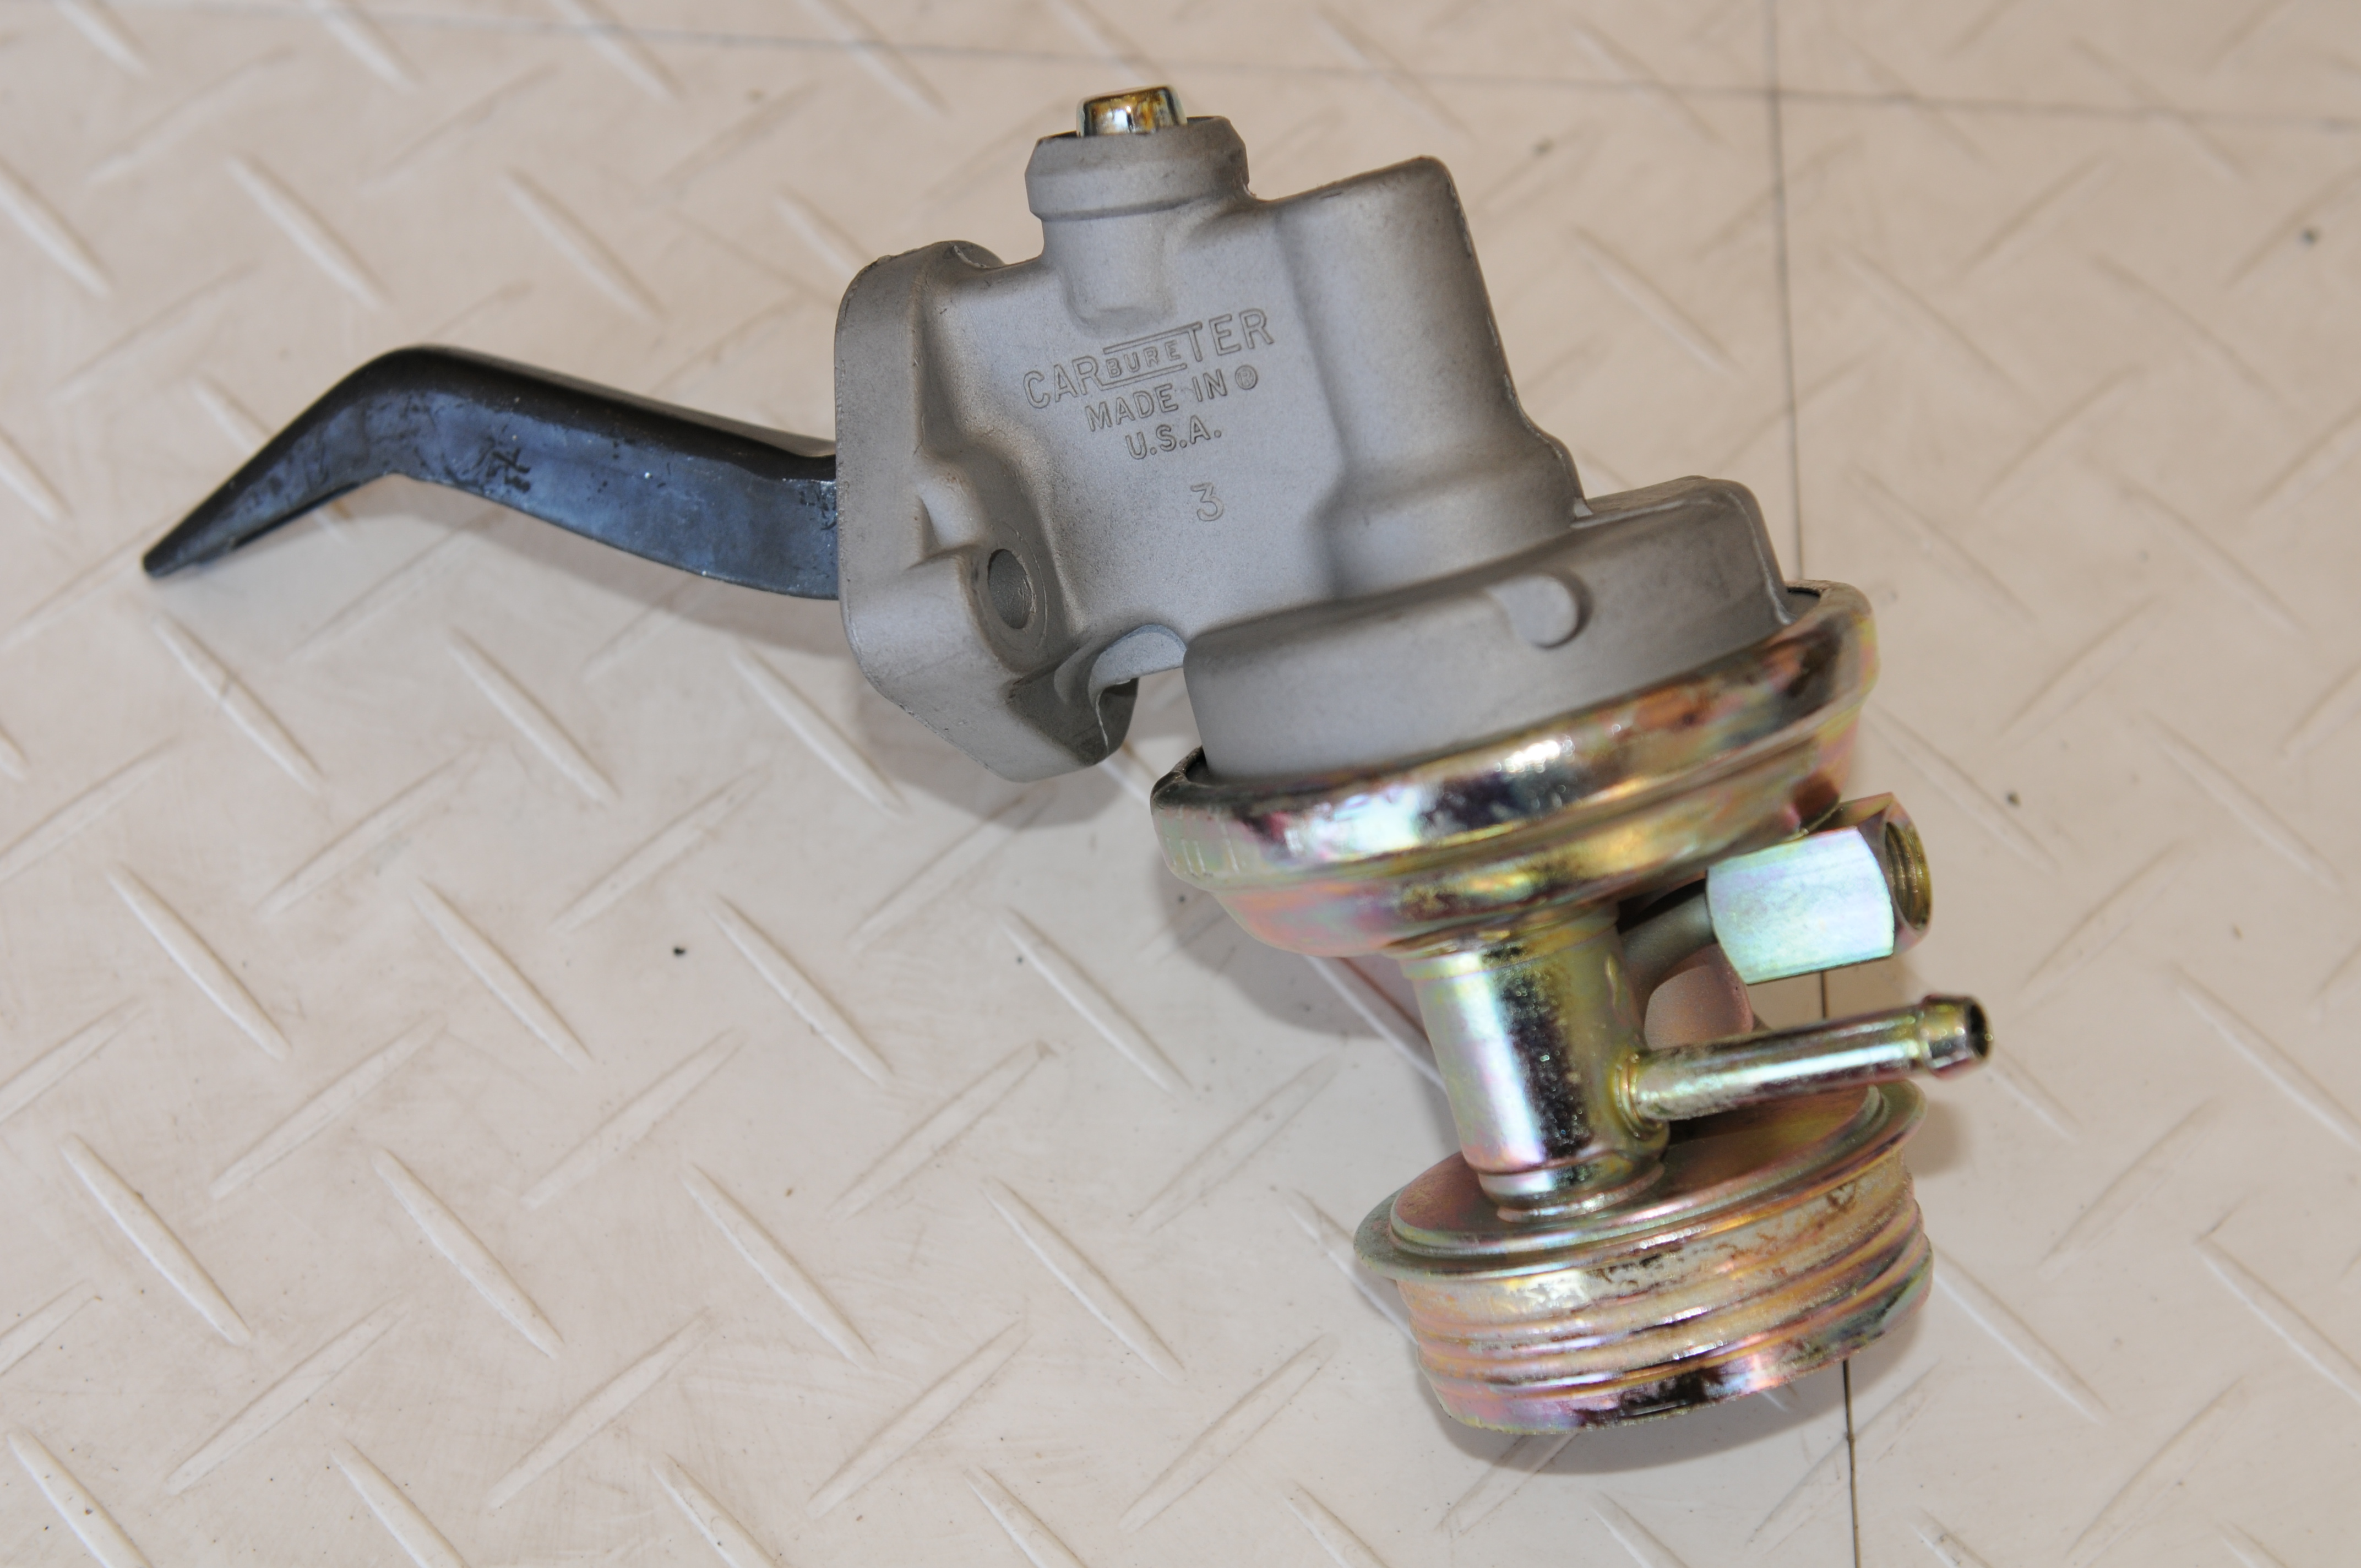 2012 Ford Edge Fuel Filter Unique Features 1966 Gt350 Carryover Cars